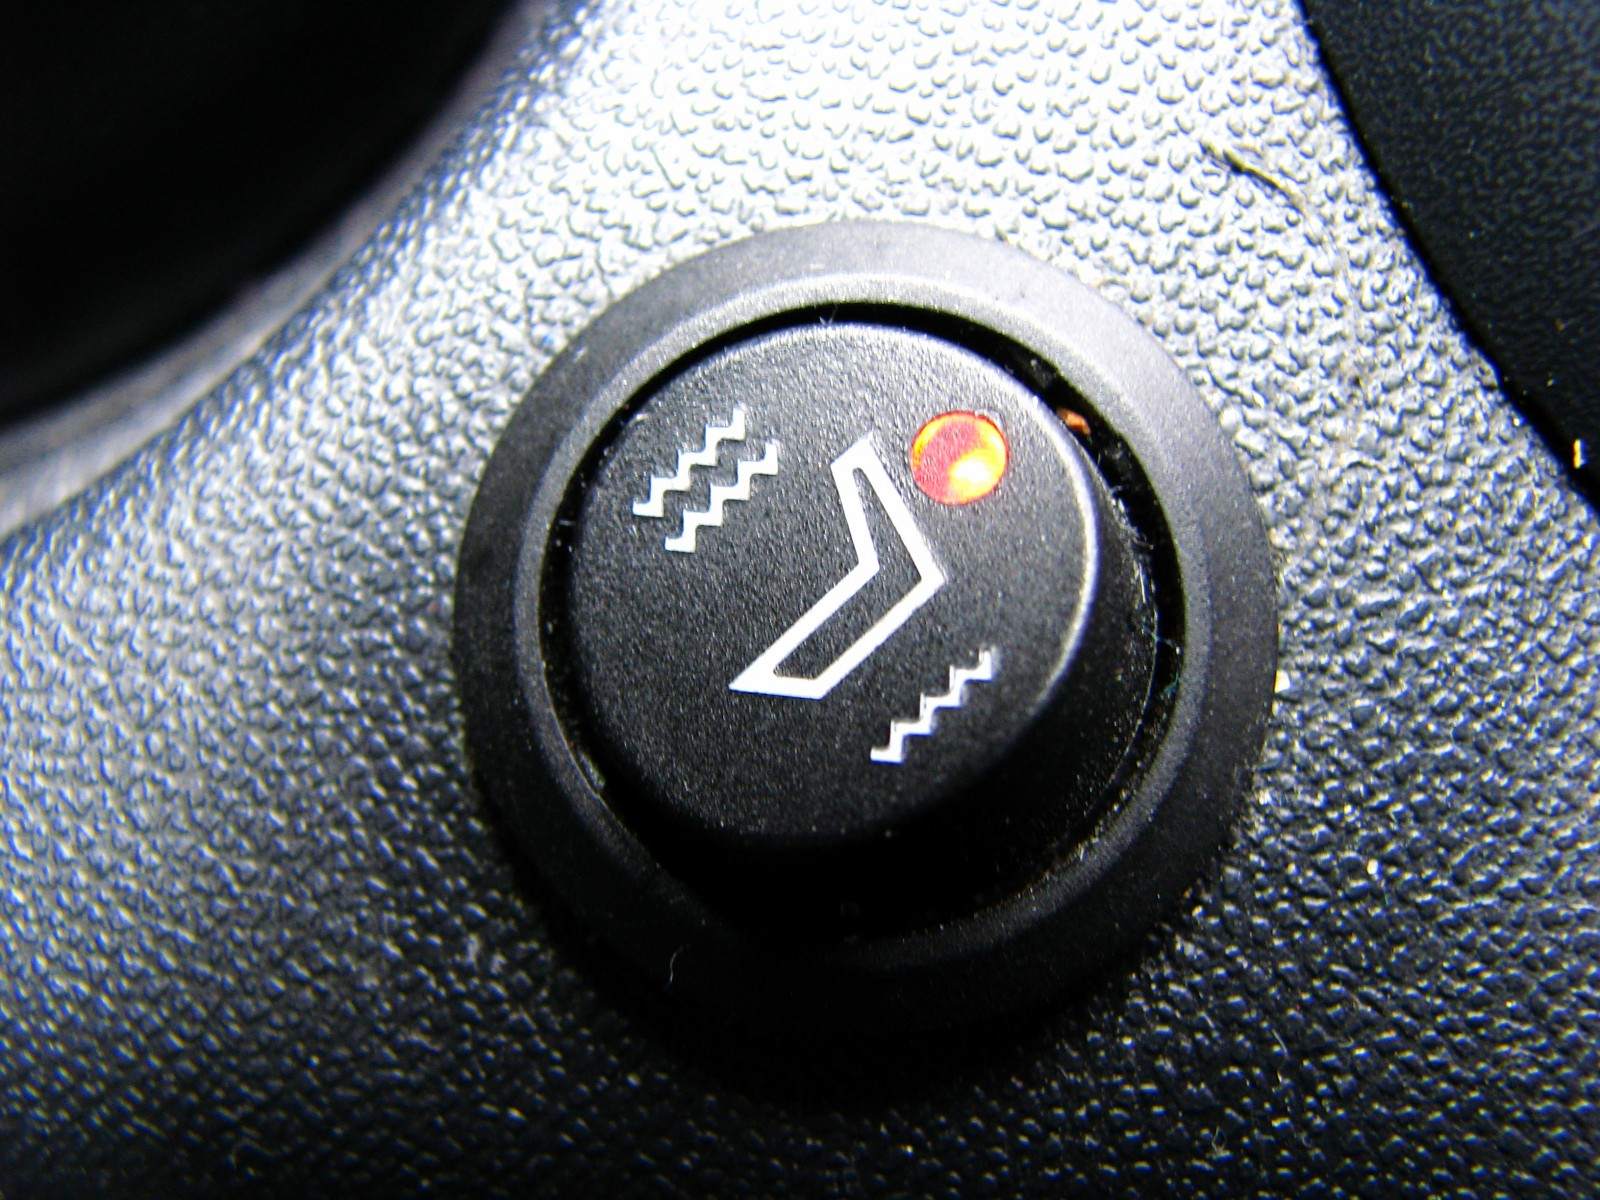 heated seat button